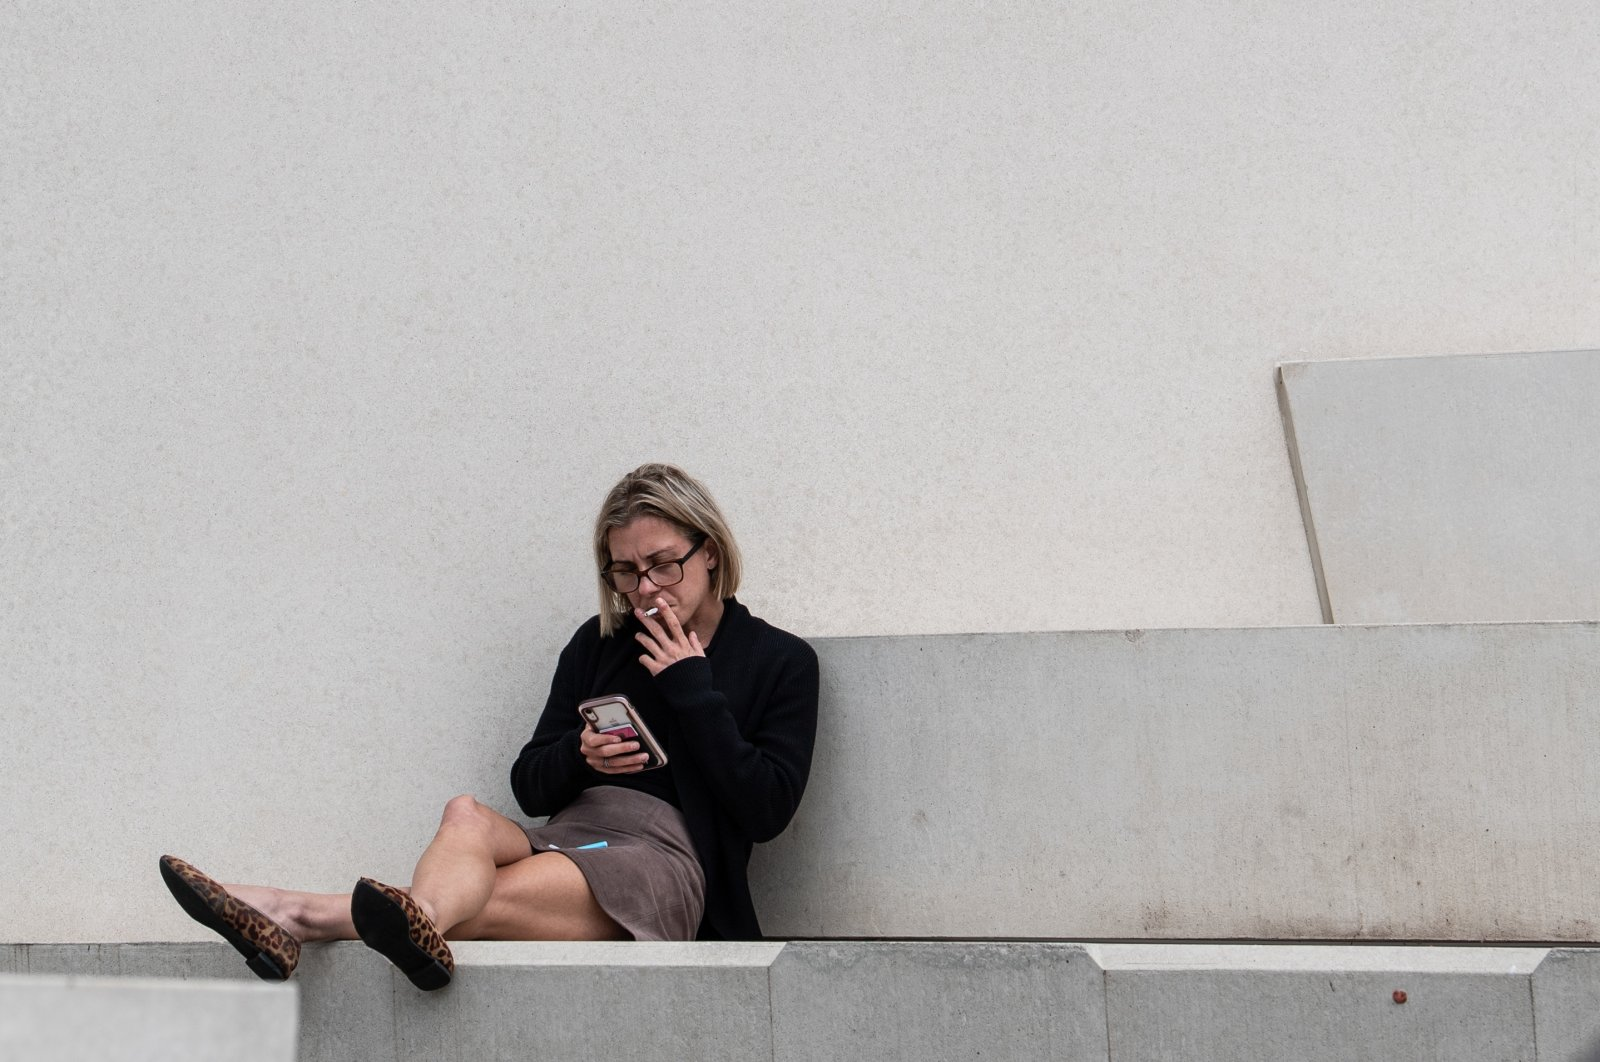 A woman smokes on steps in Campbells Cove, Sydney, Australia, March 16, 2020. (AAP Image via Reuters)